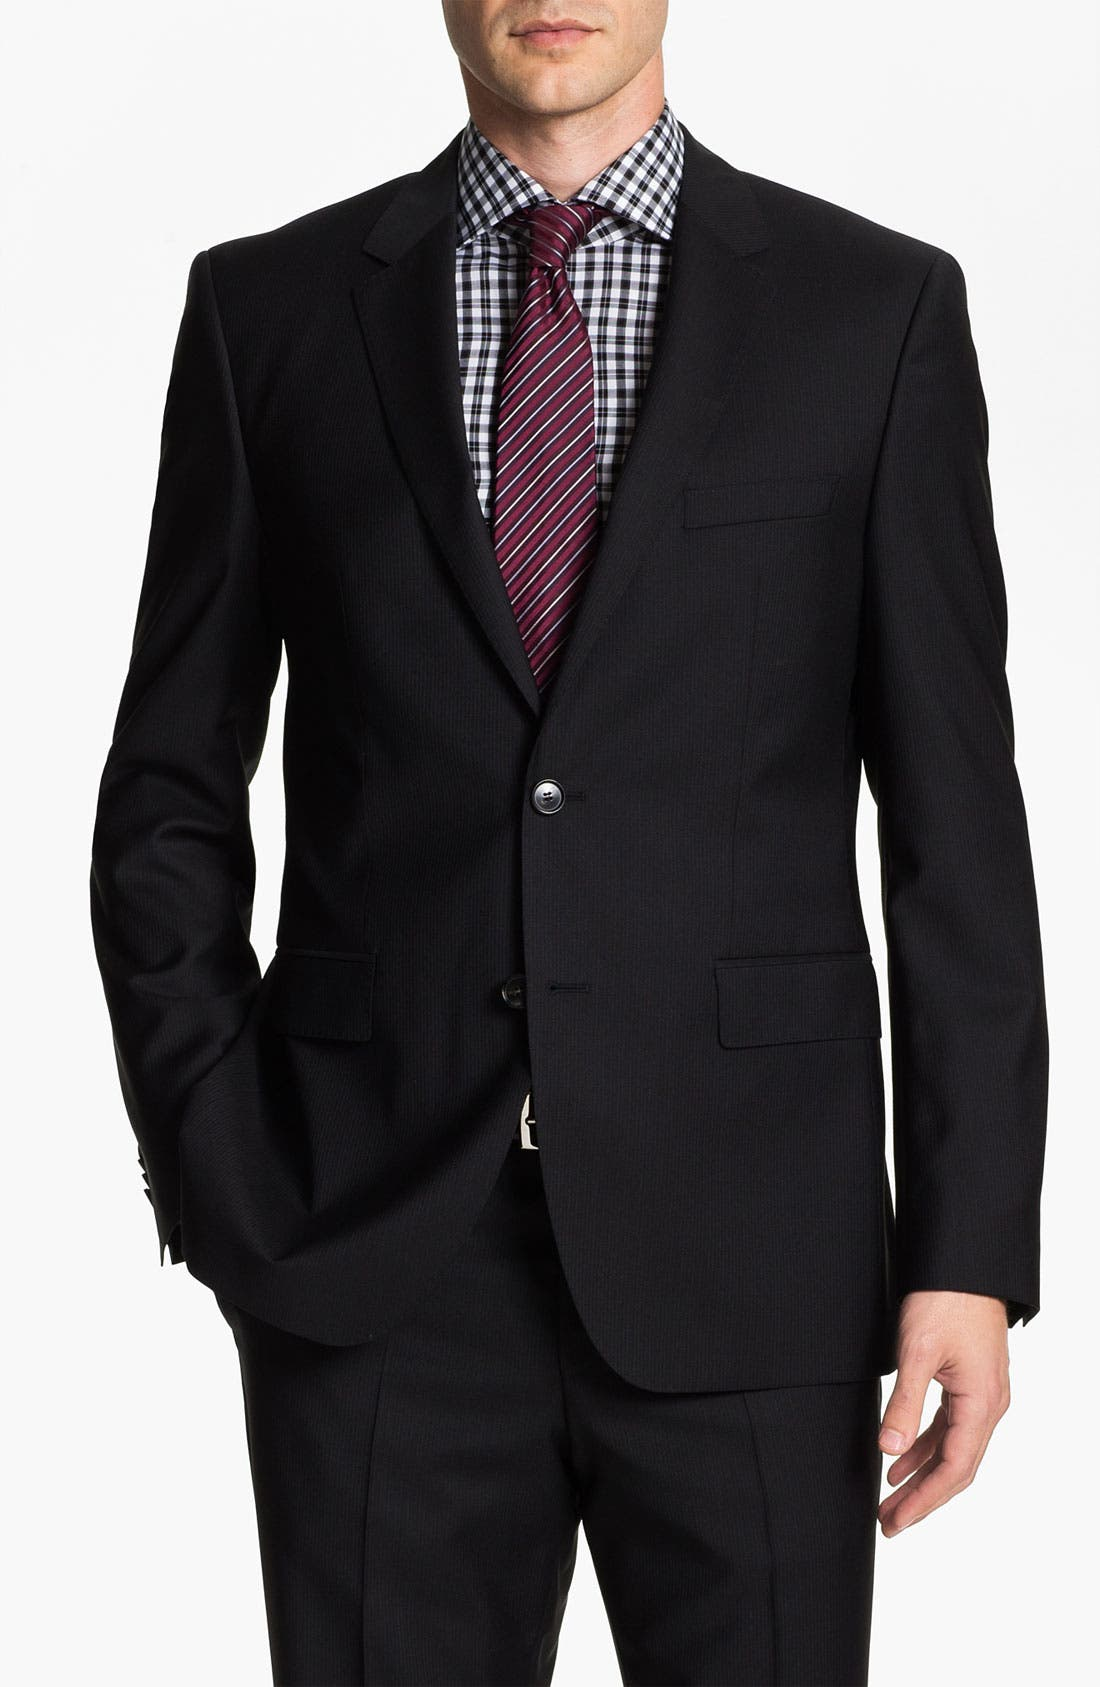 Alternate Image 1 Selected - BOSS Black 'Jam/Sharp' Trim Fit Stripe Suit